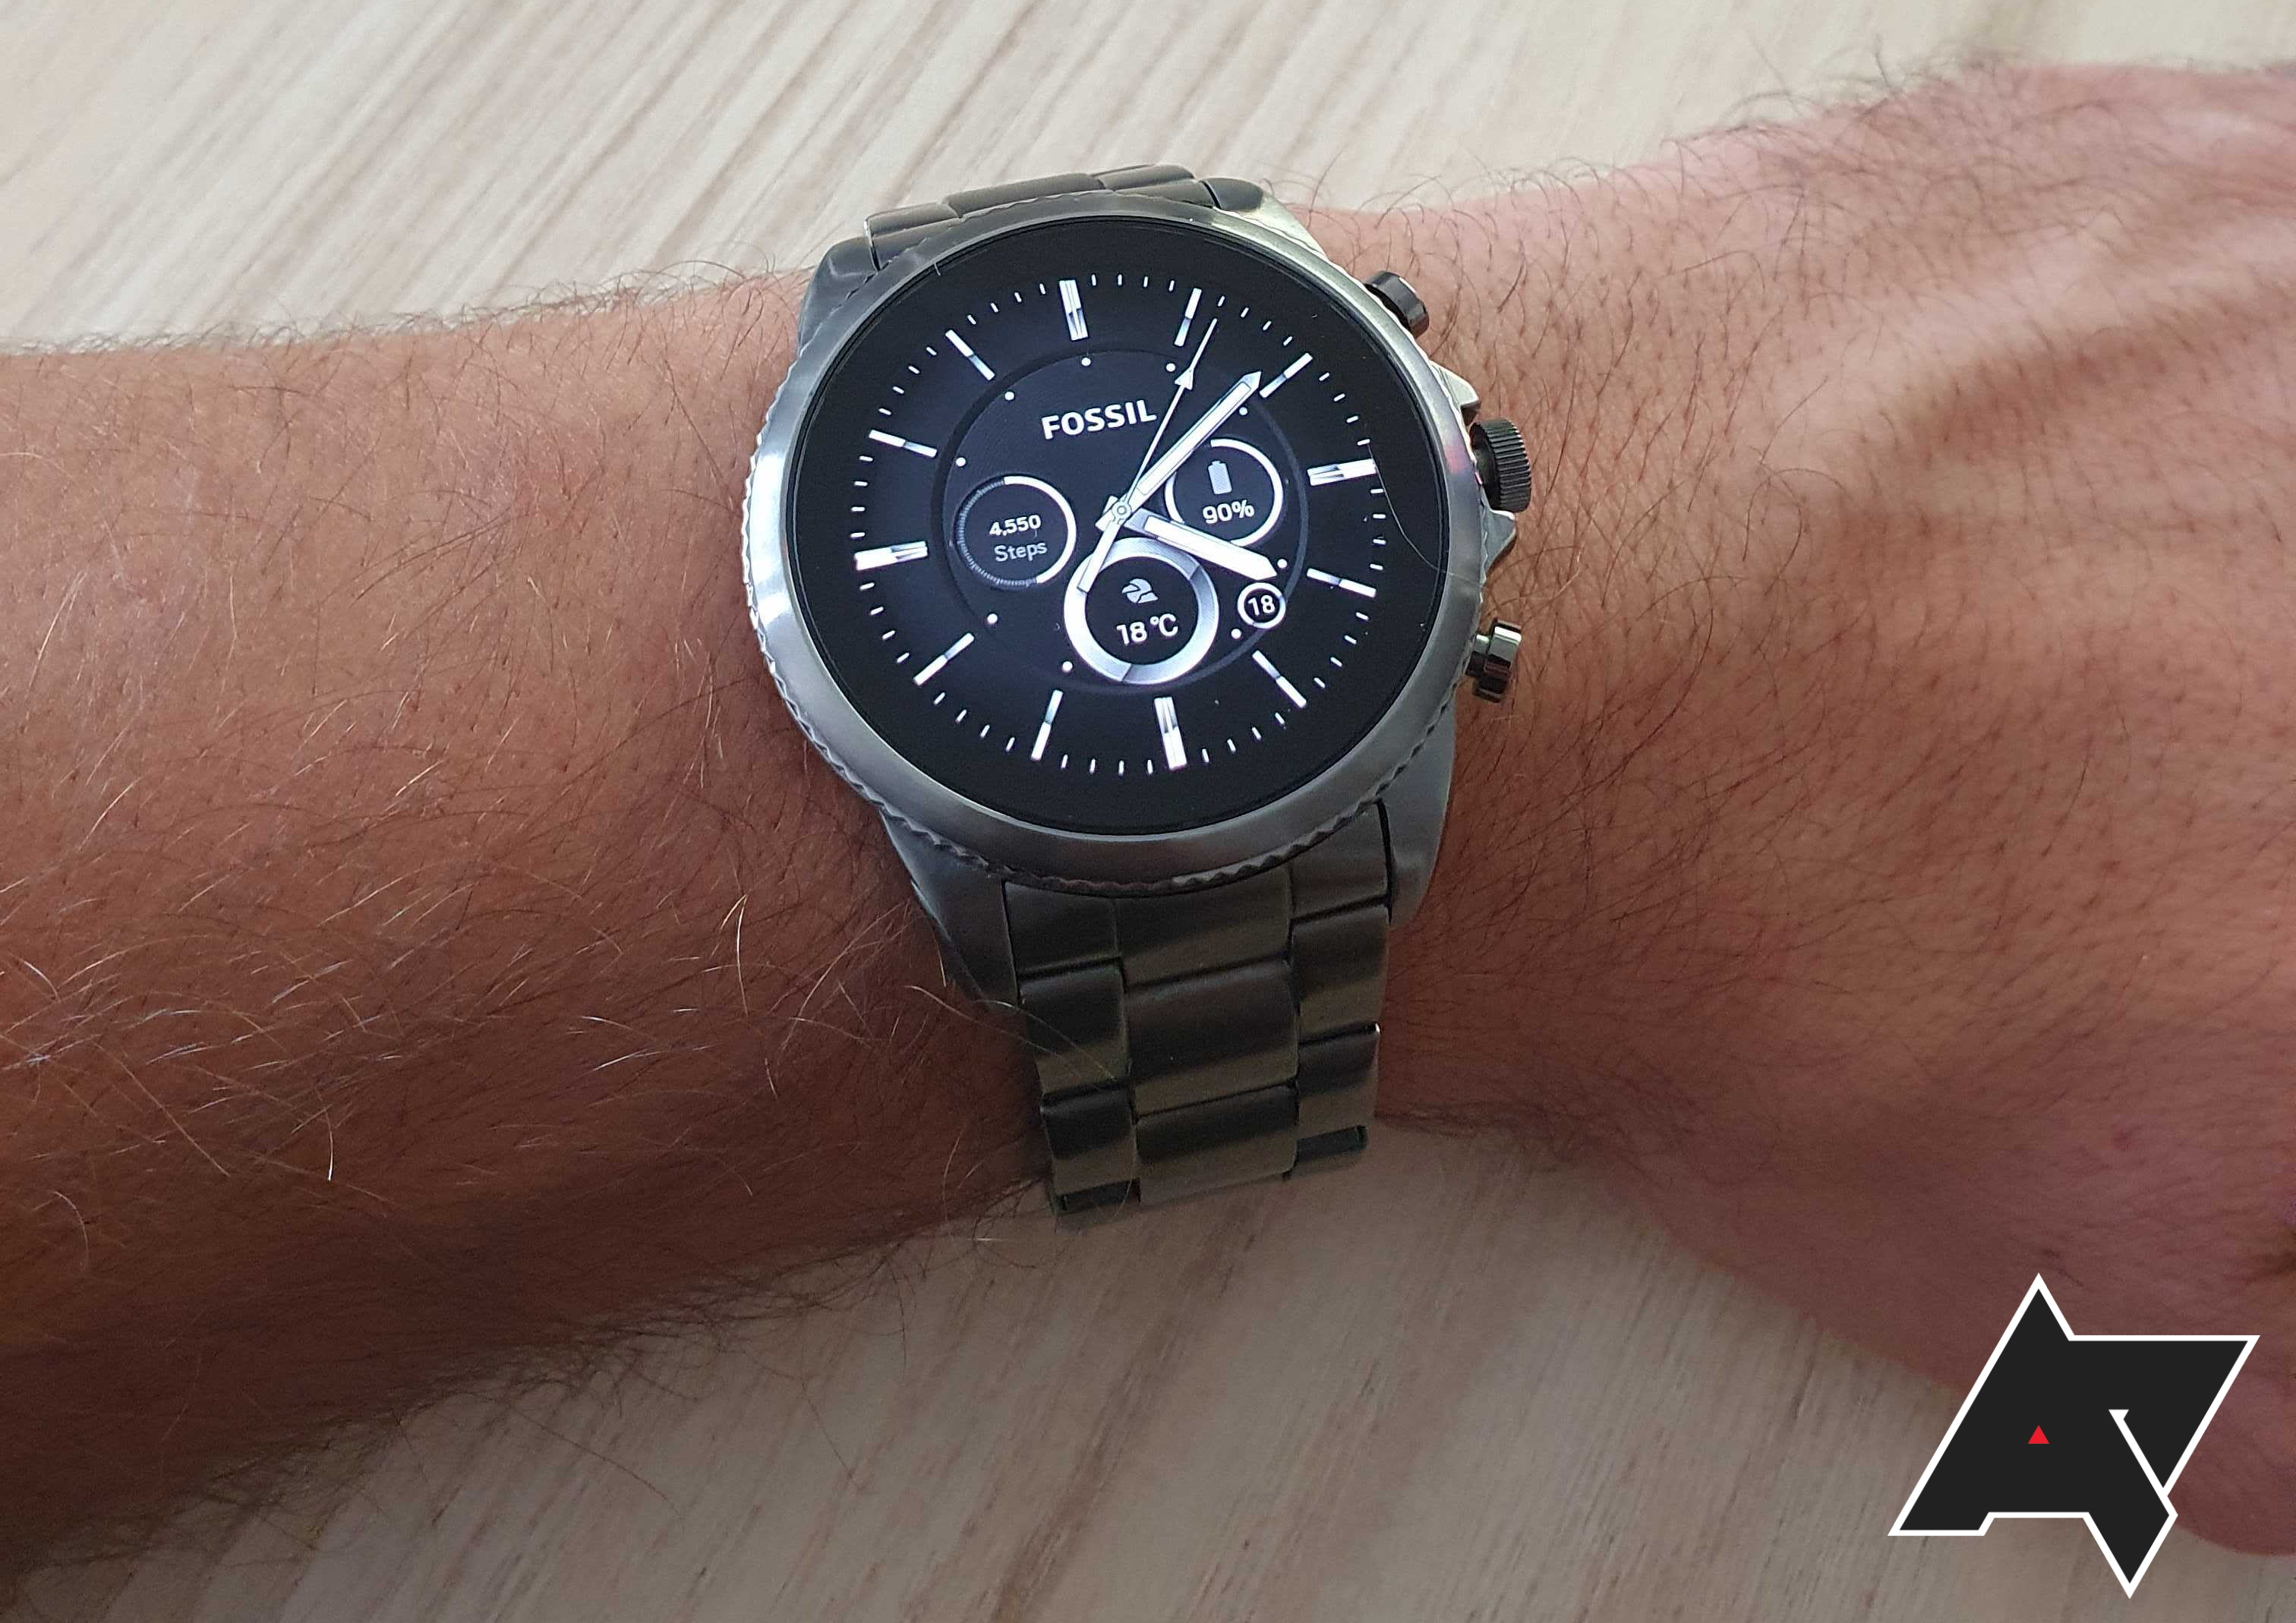 Why I bought the Fossil Gen 6 smartwatch over the Samsung Galaxy Watch4